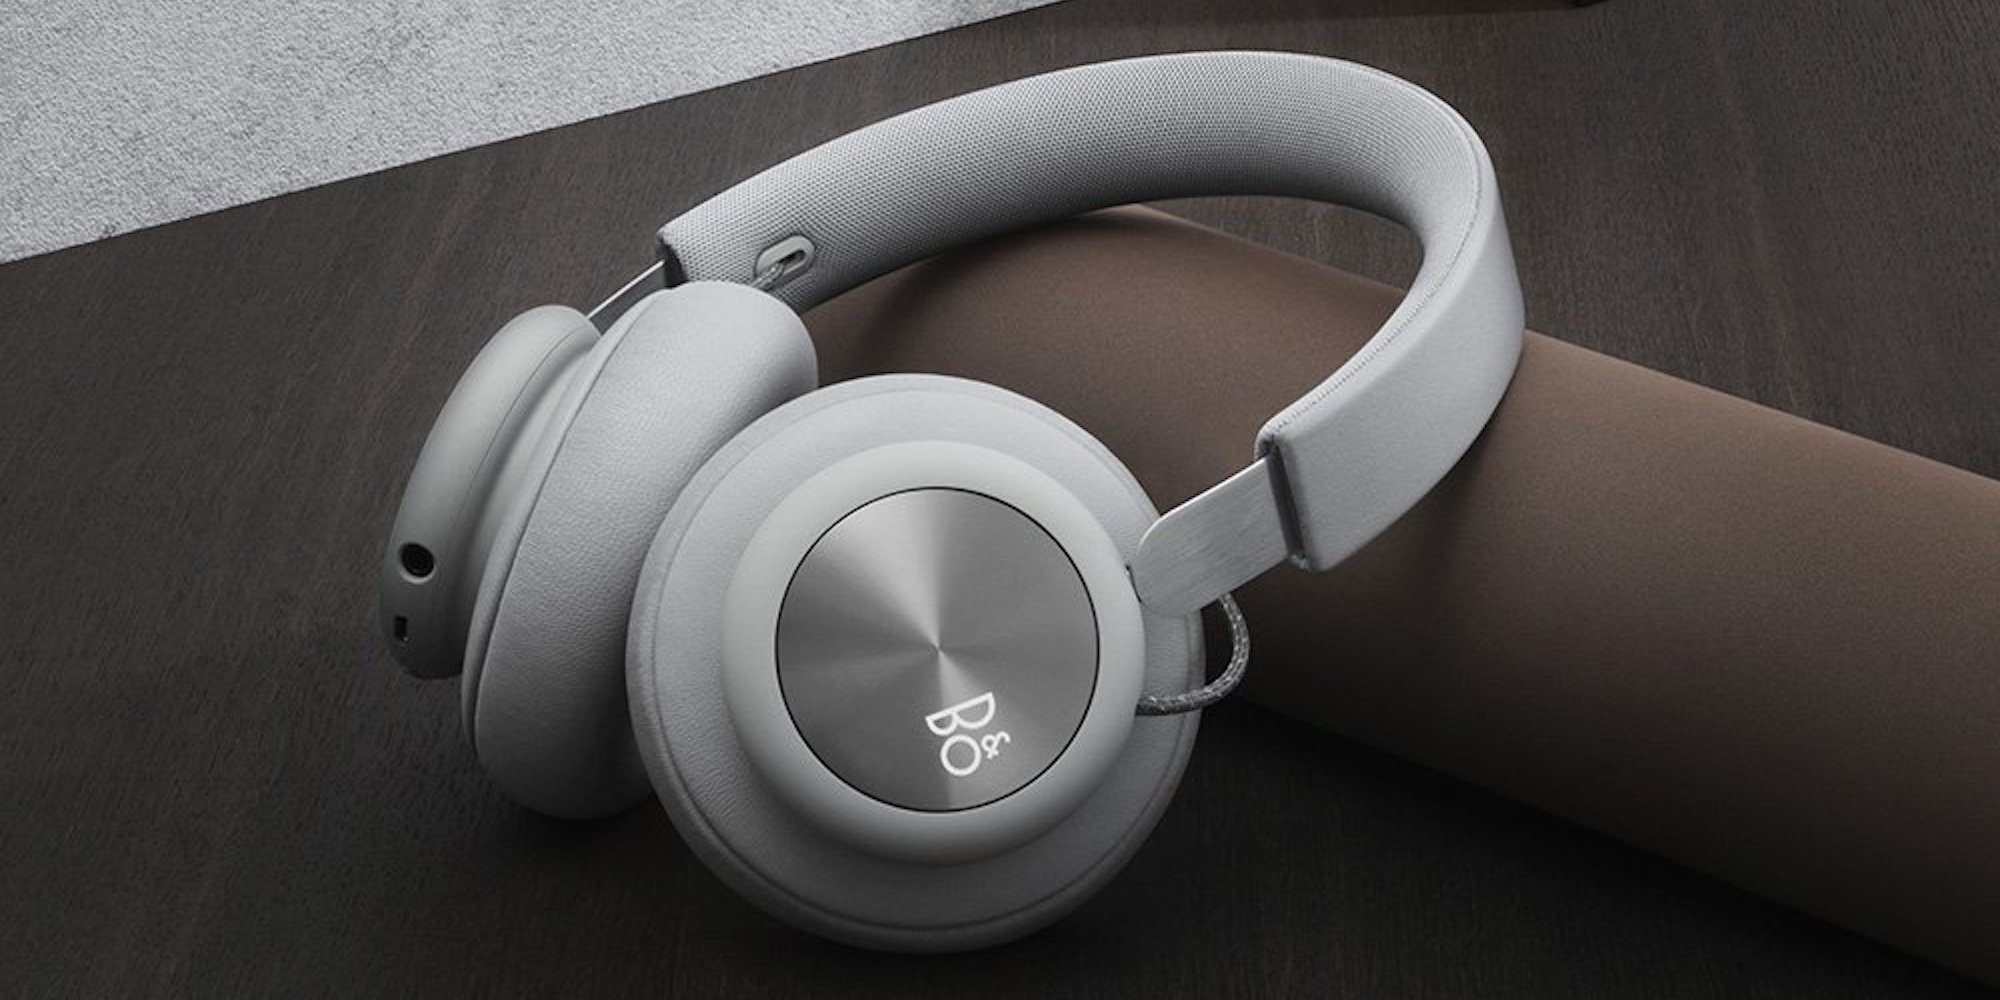 Enjoy crisp audio with the Bang & Olufsen H4 Bluetooth Headphones for $153 (Orig. $299)